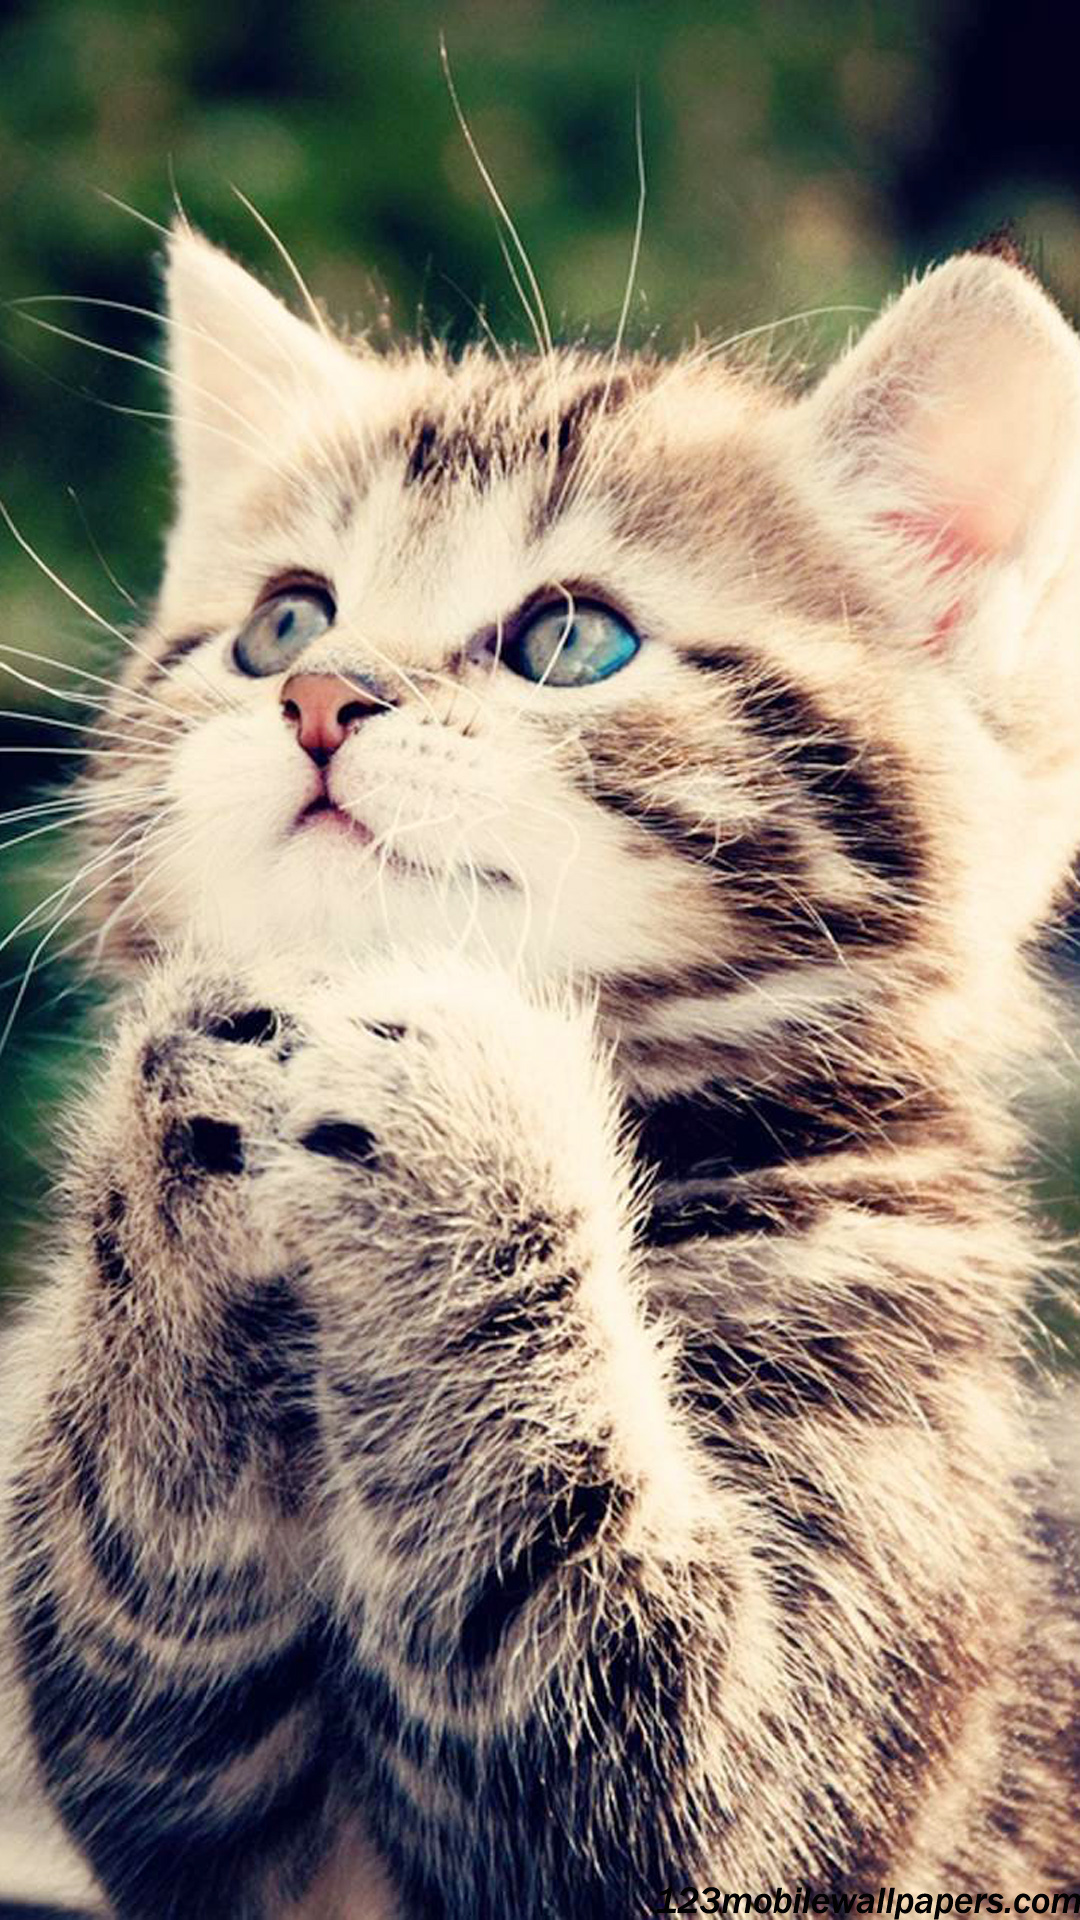 Cute Kitten Praying To God